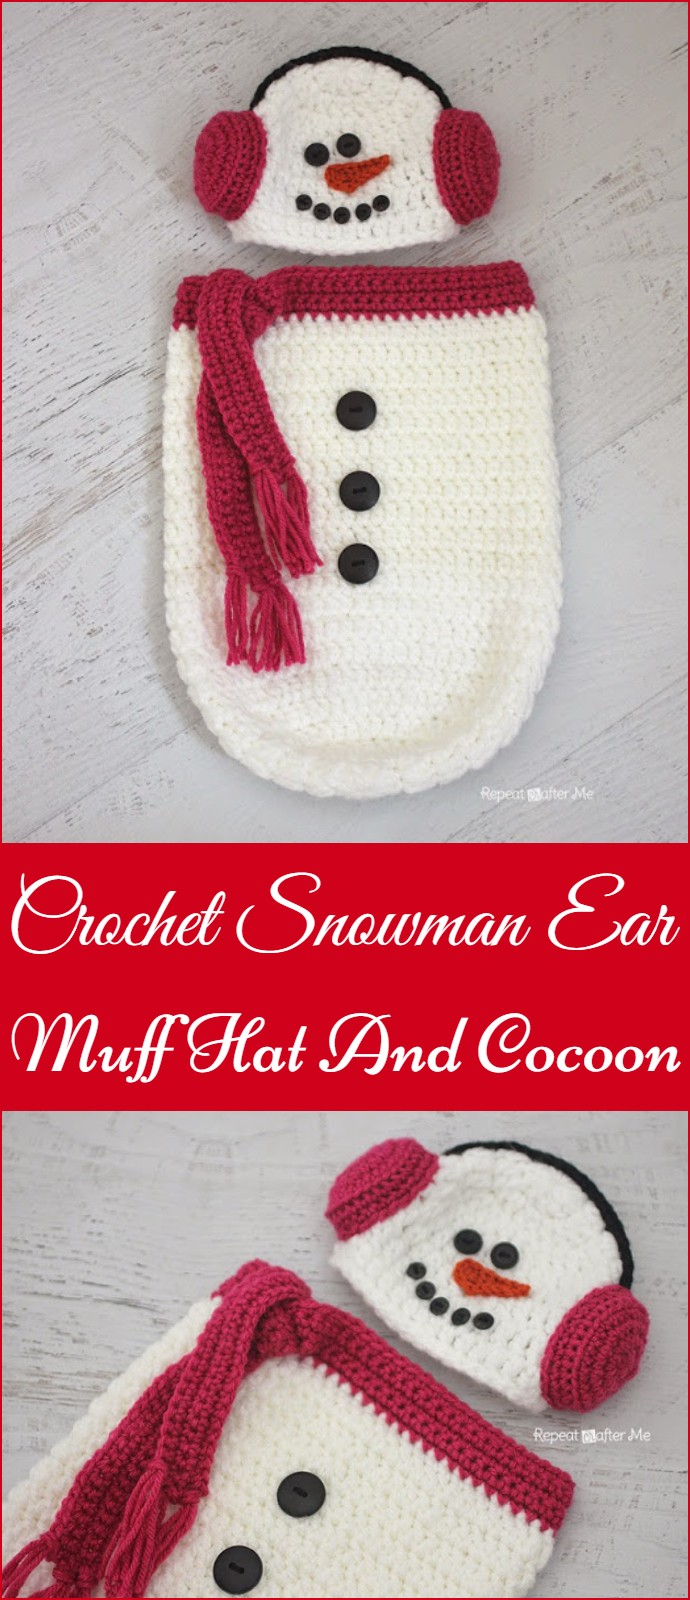 Crochet Snowman Ear Muff Hat And Cocoon